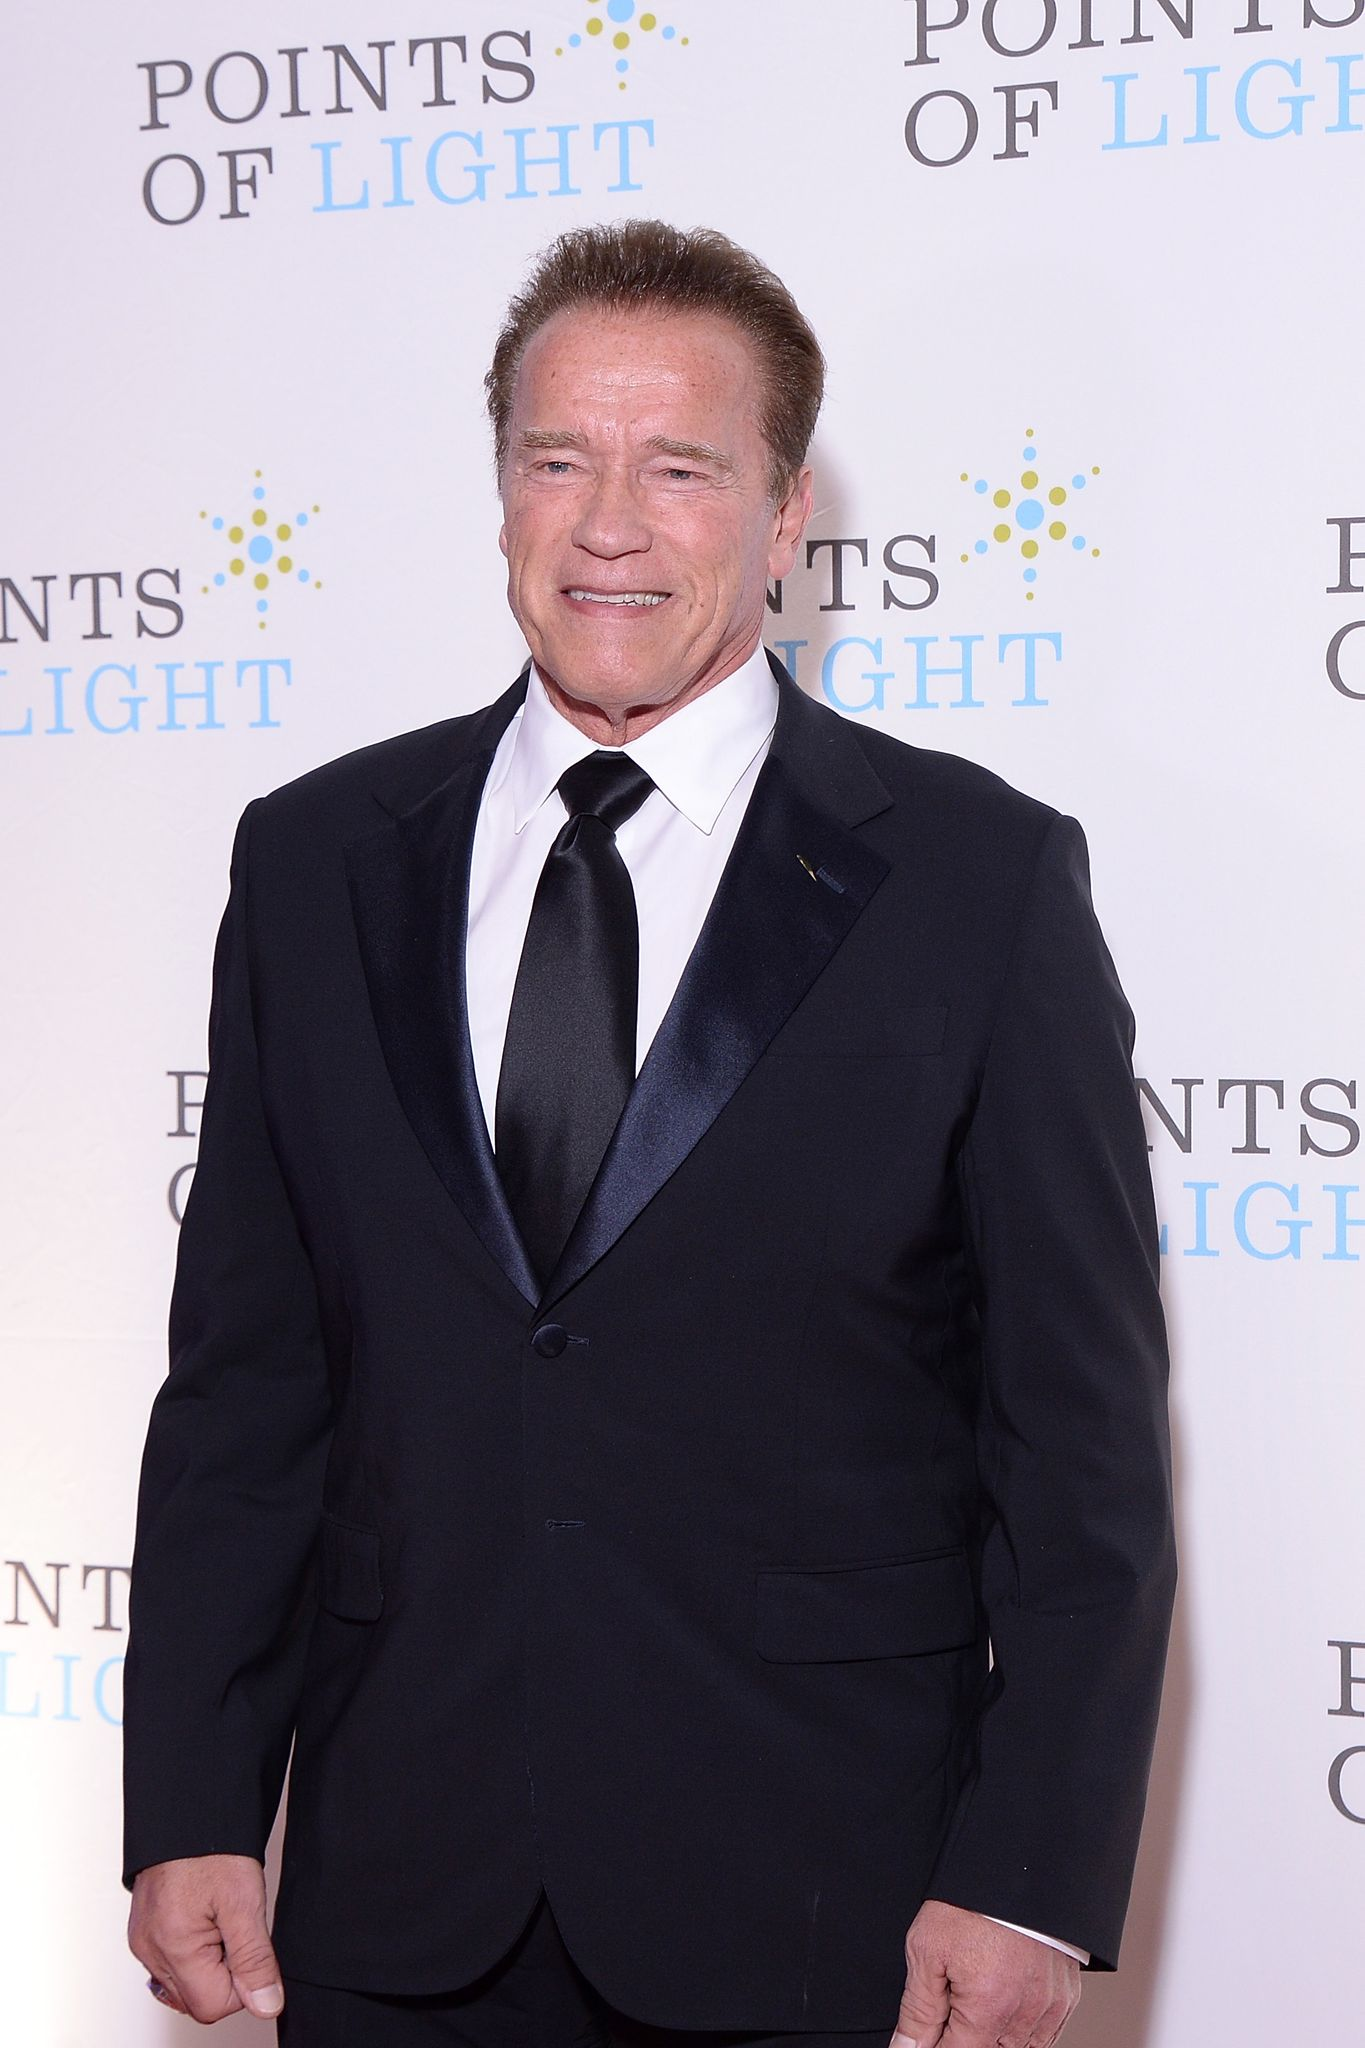 Former Governor of California and 2017 Points of Light Tribute Award Honoree, Arnold Schwarzenegger, attends the 2017 Points of Light Gala at the French Embassy on October 19, 2017 | Photo: Getty Images